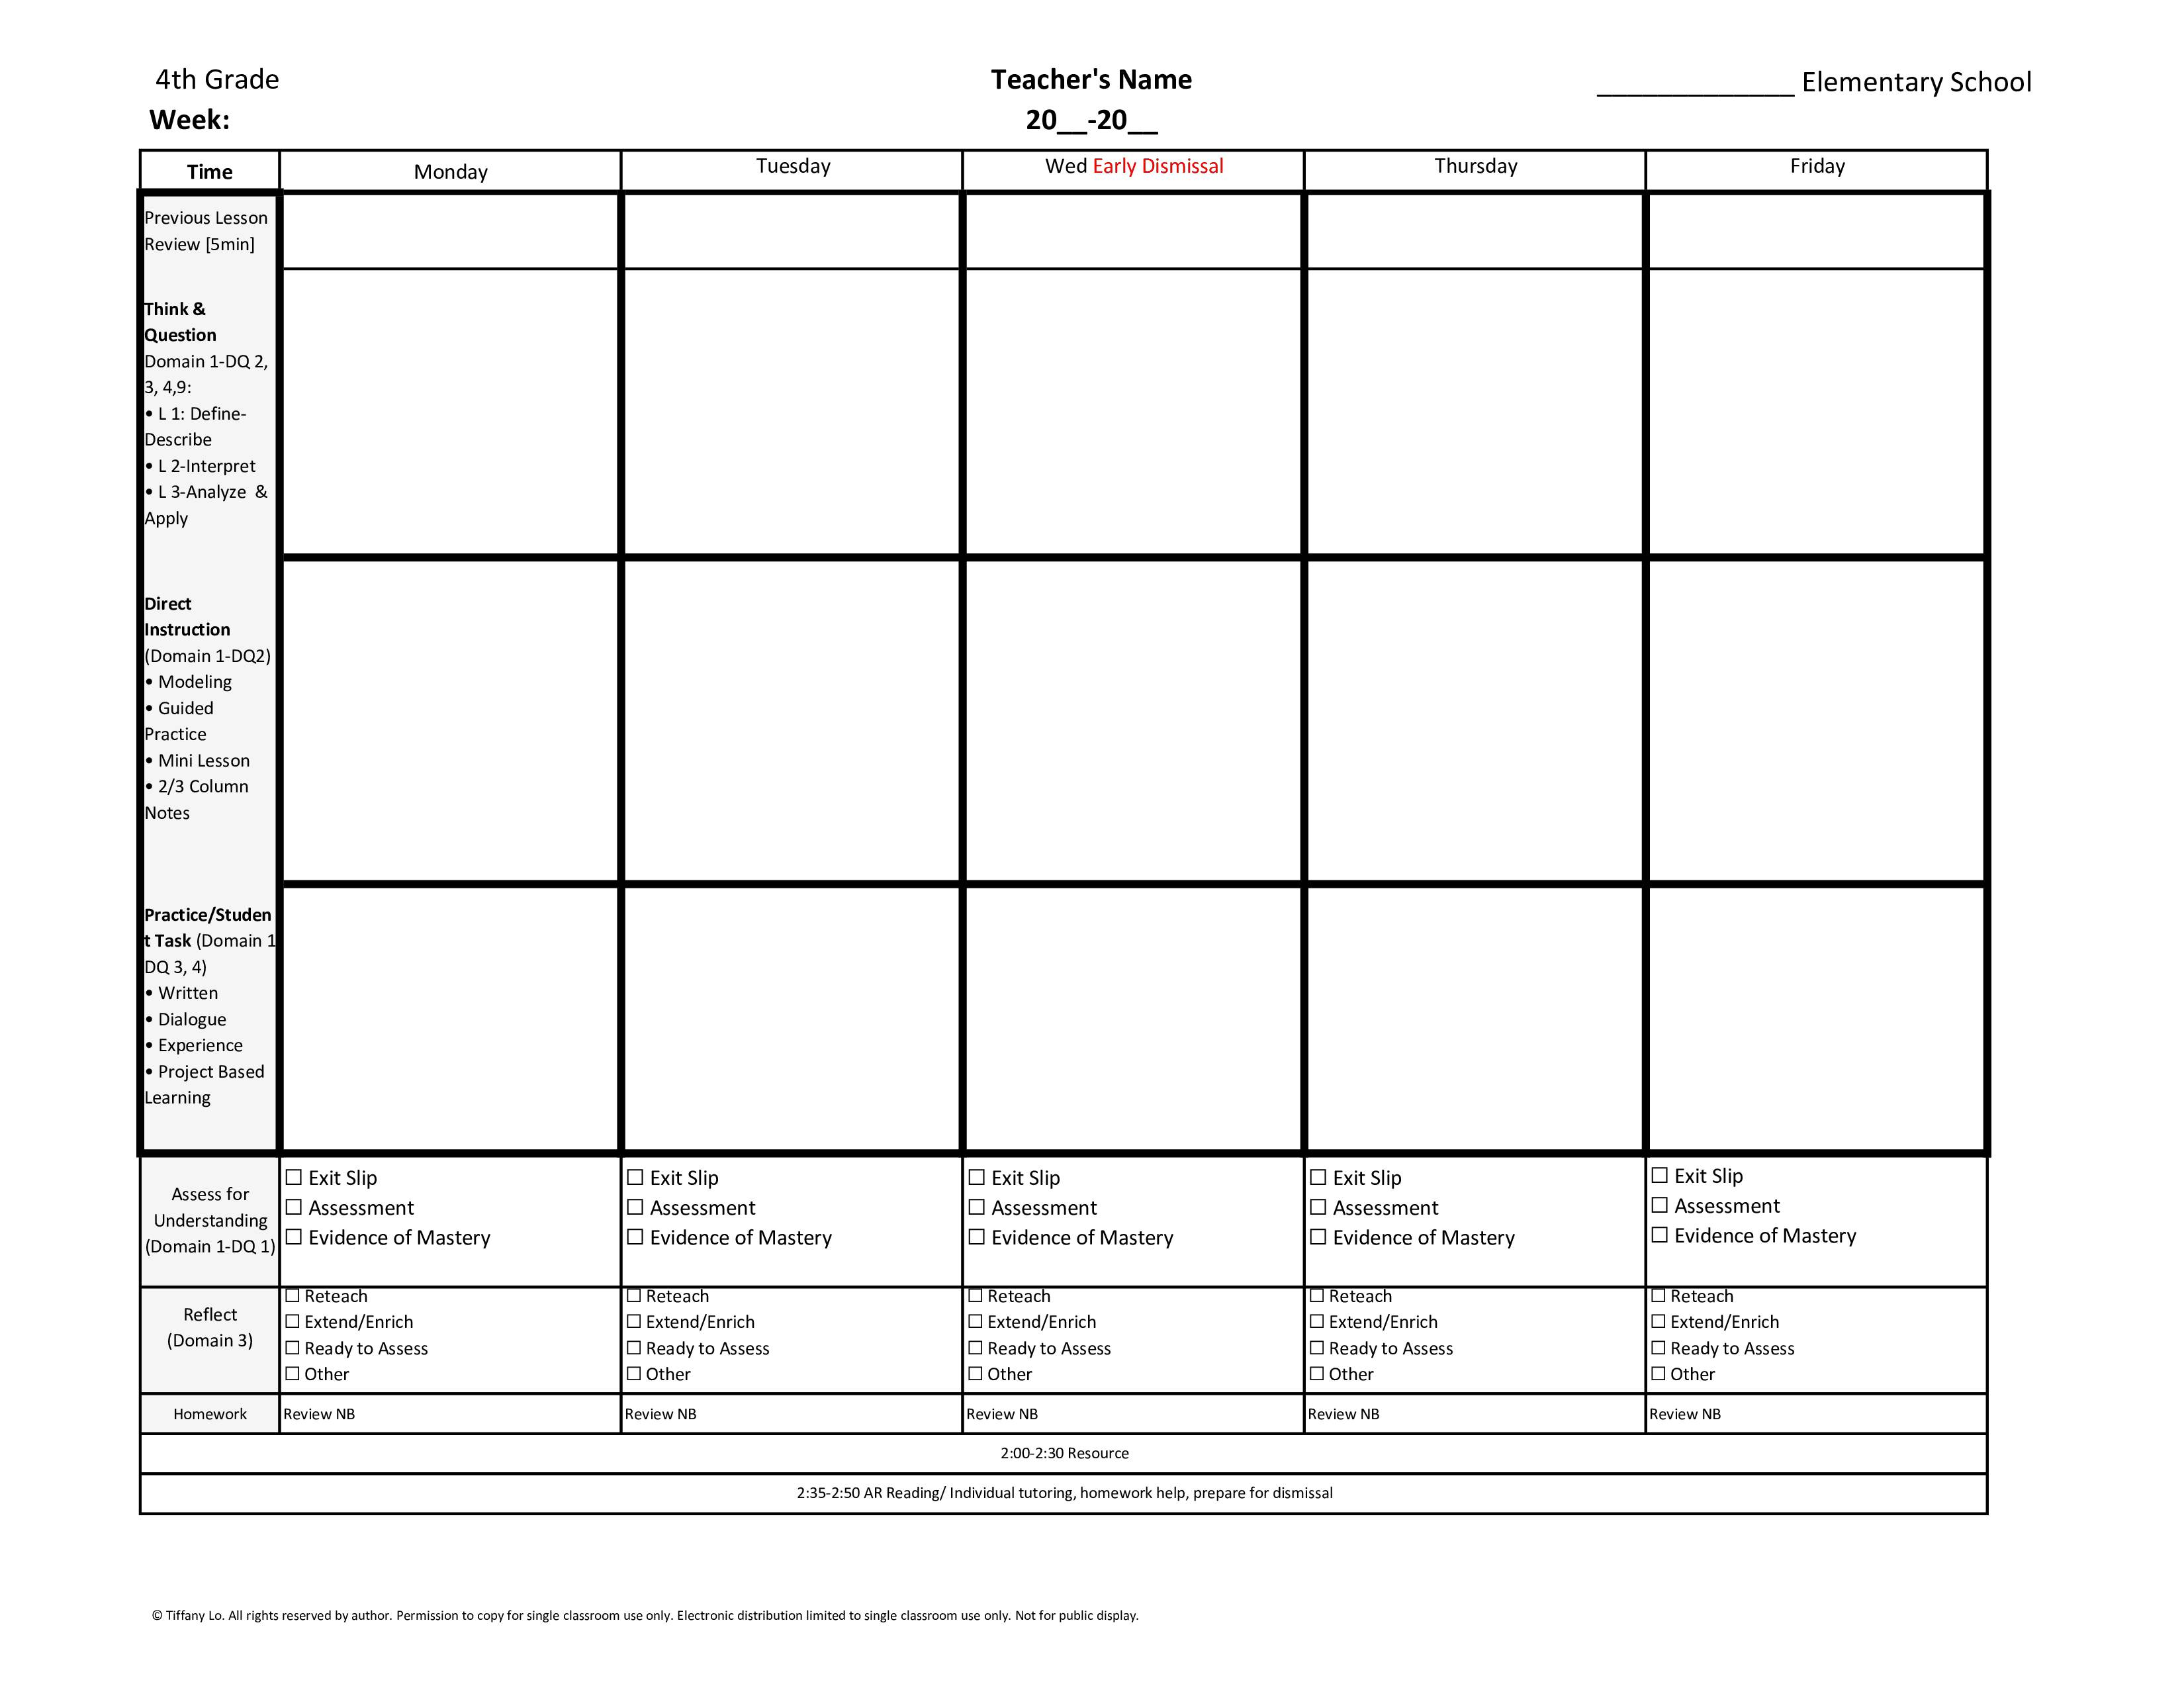 4th Fourth Grade Weekly Lesson Plan Template W Florida